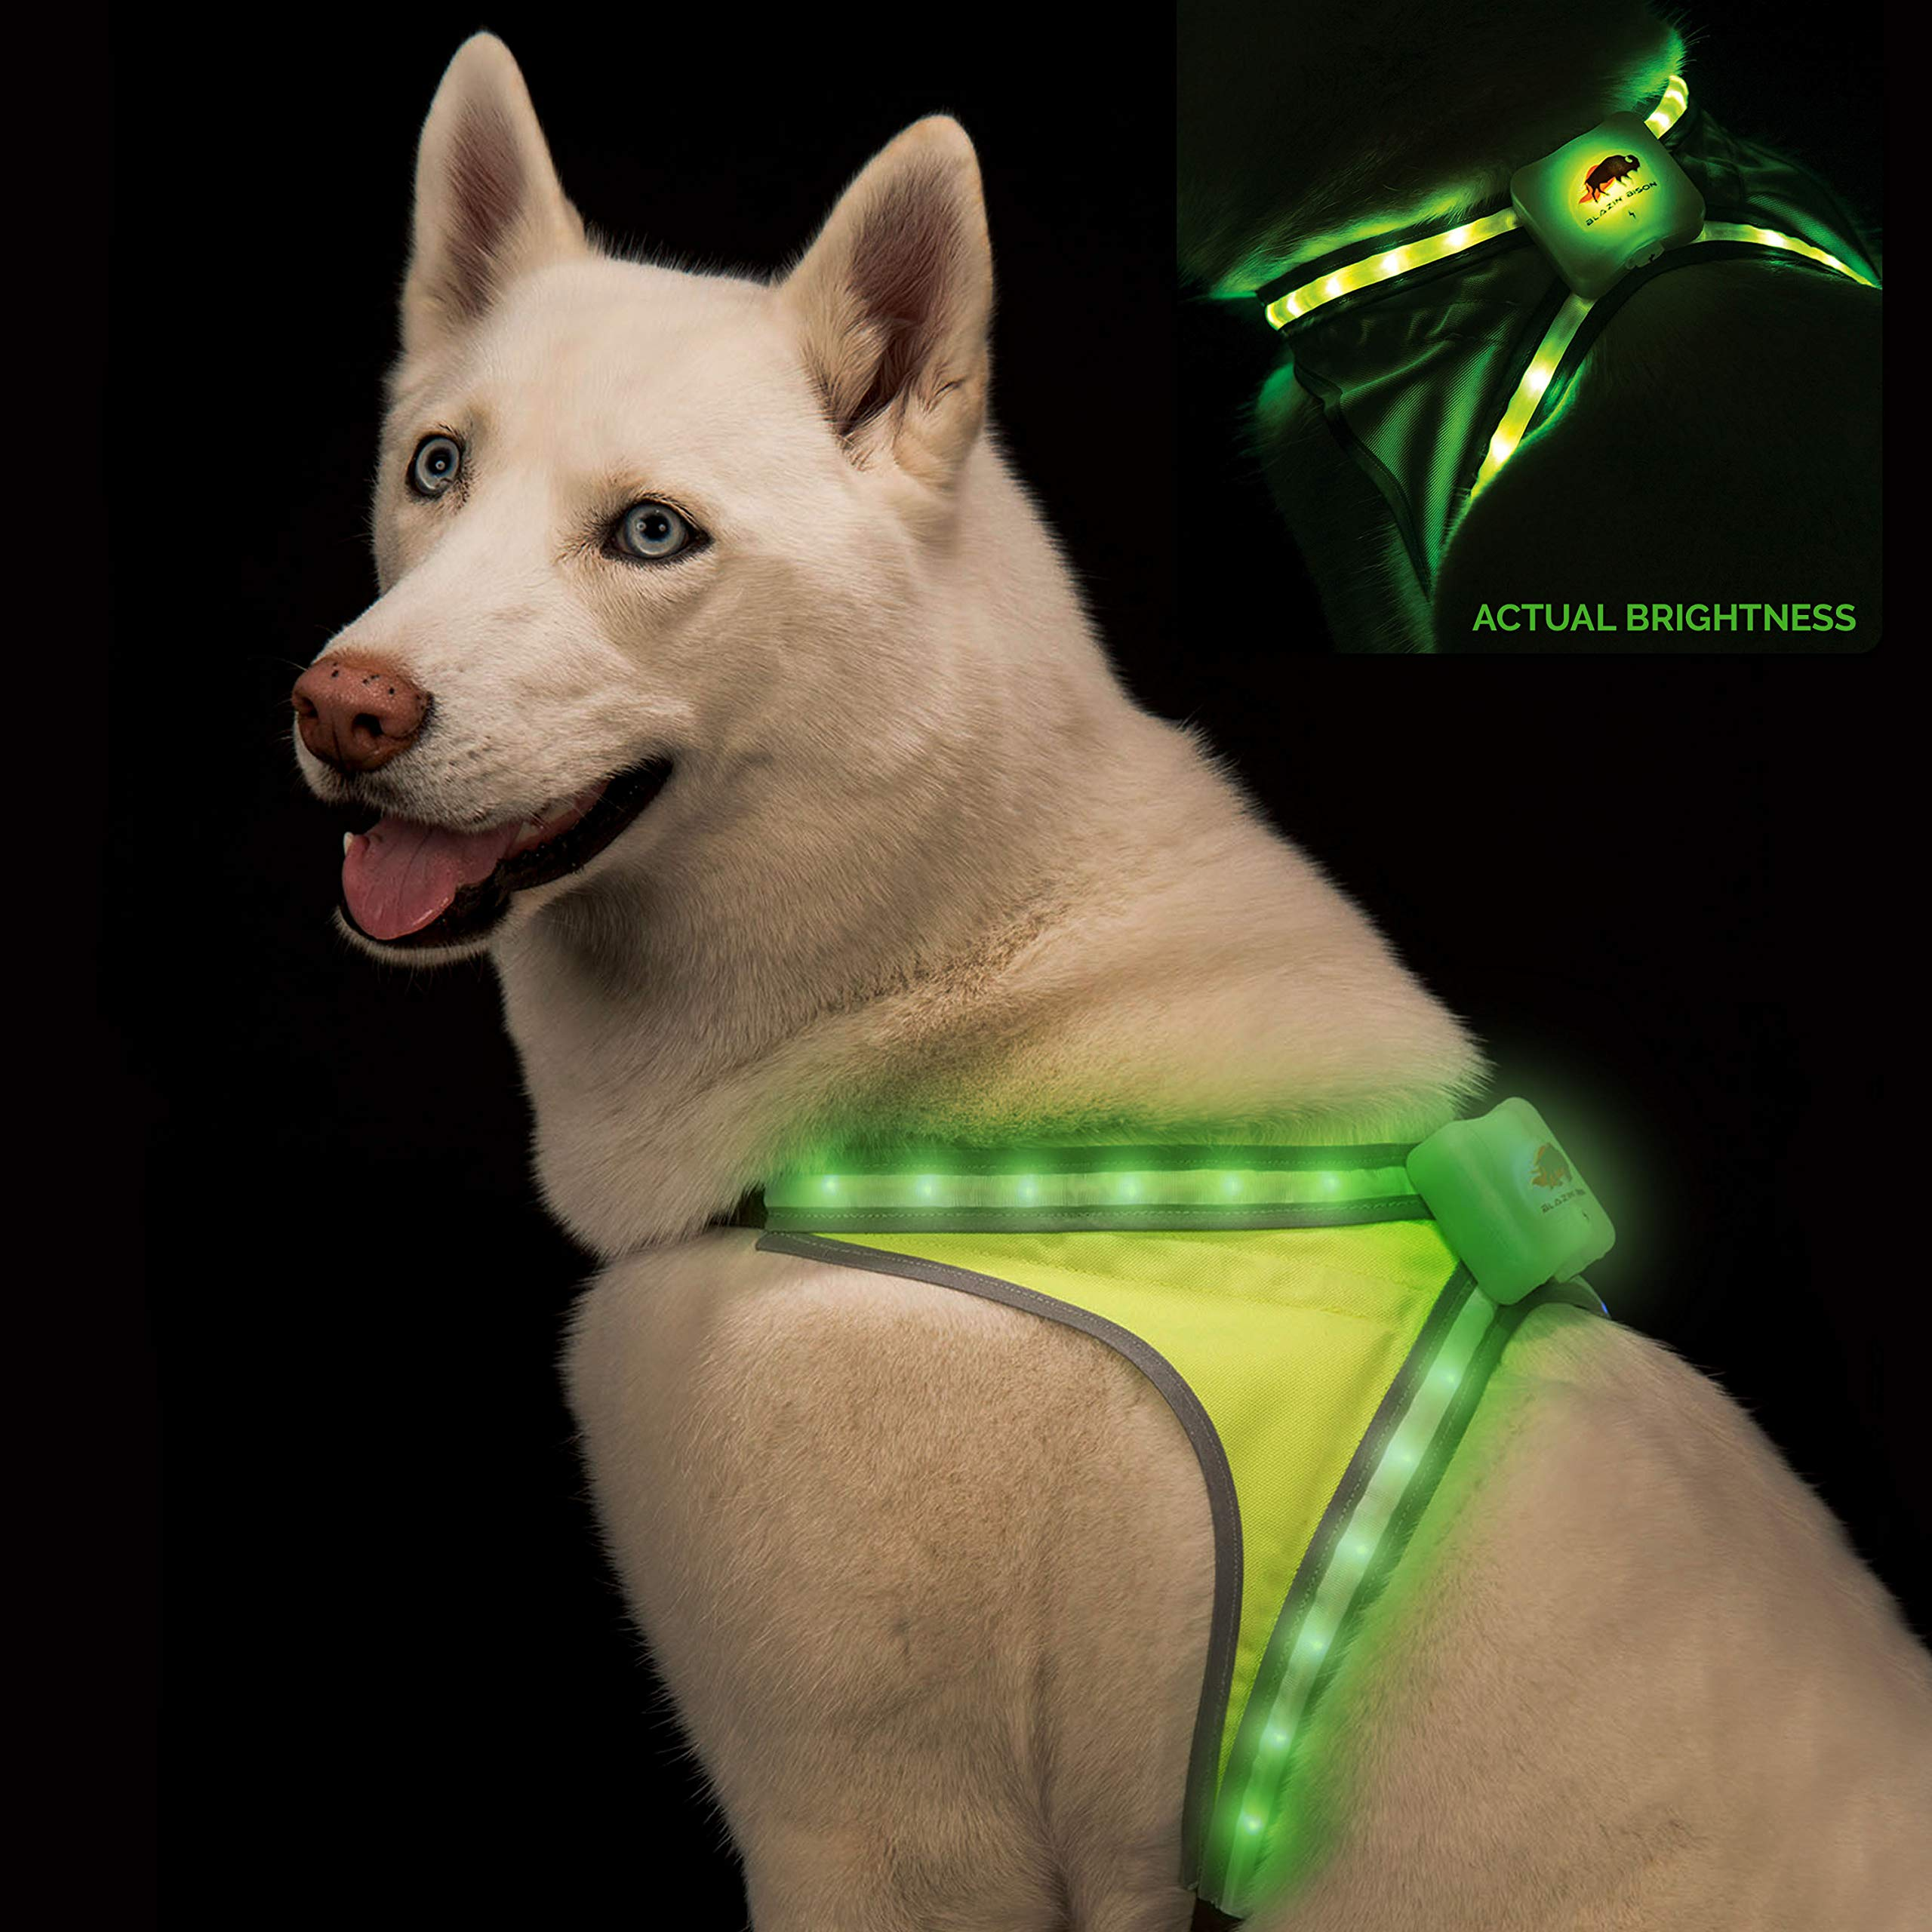 Blazin' Safety LED Dog Harness | 8 Colors Plus 6 Flashing Modes Reflective Light Vest | USB Rechargeable, Rainproof, Lightweight, Adjustable Sizing, Up to 15 Hour Charge (L)